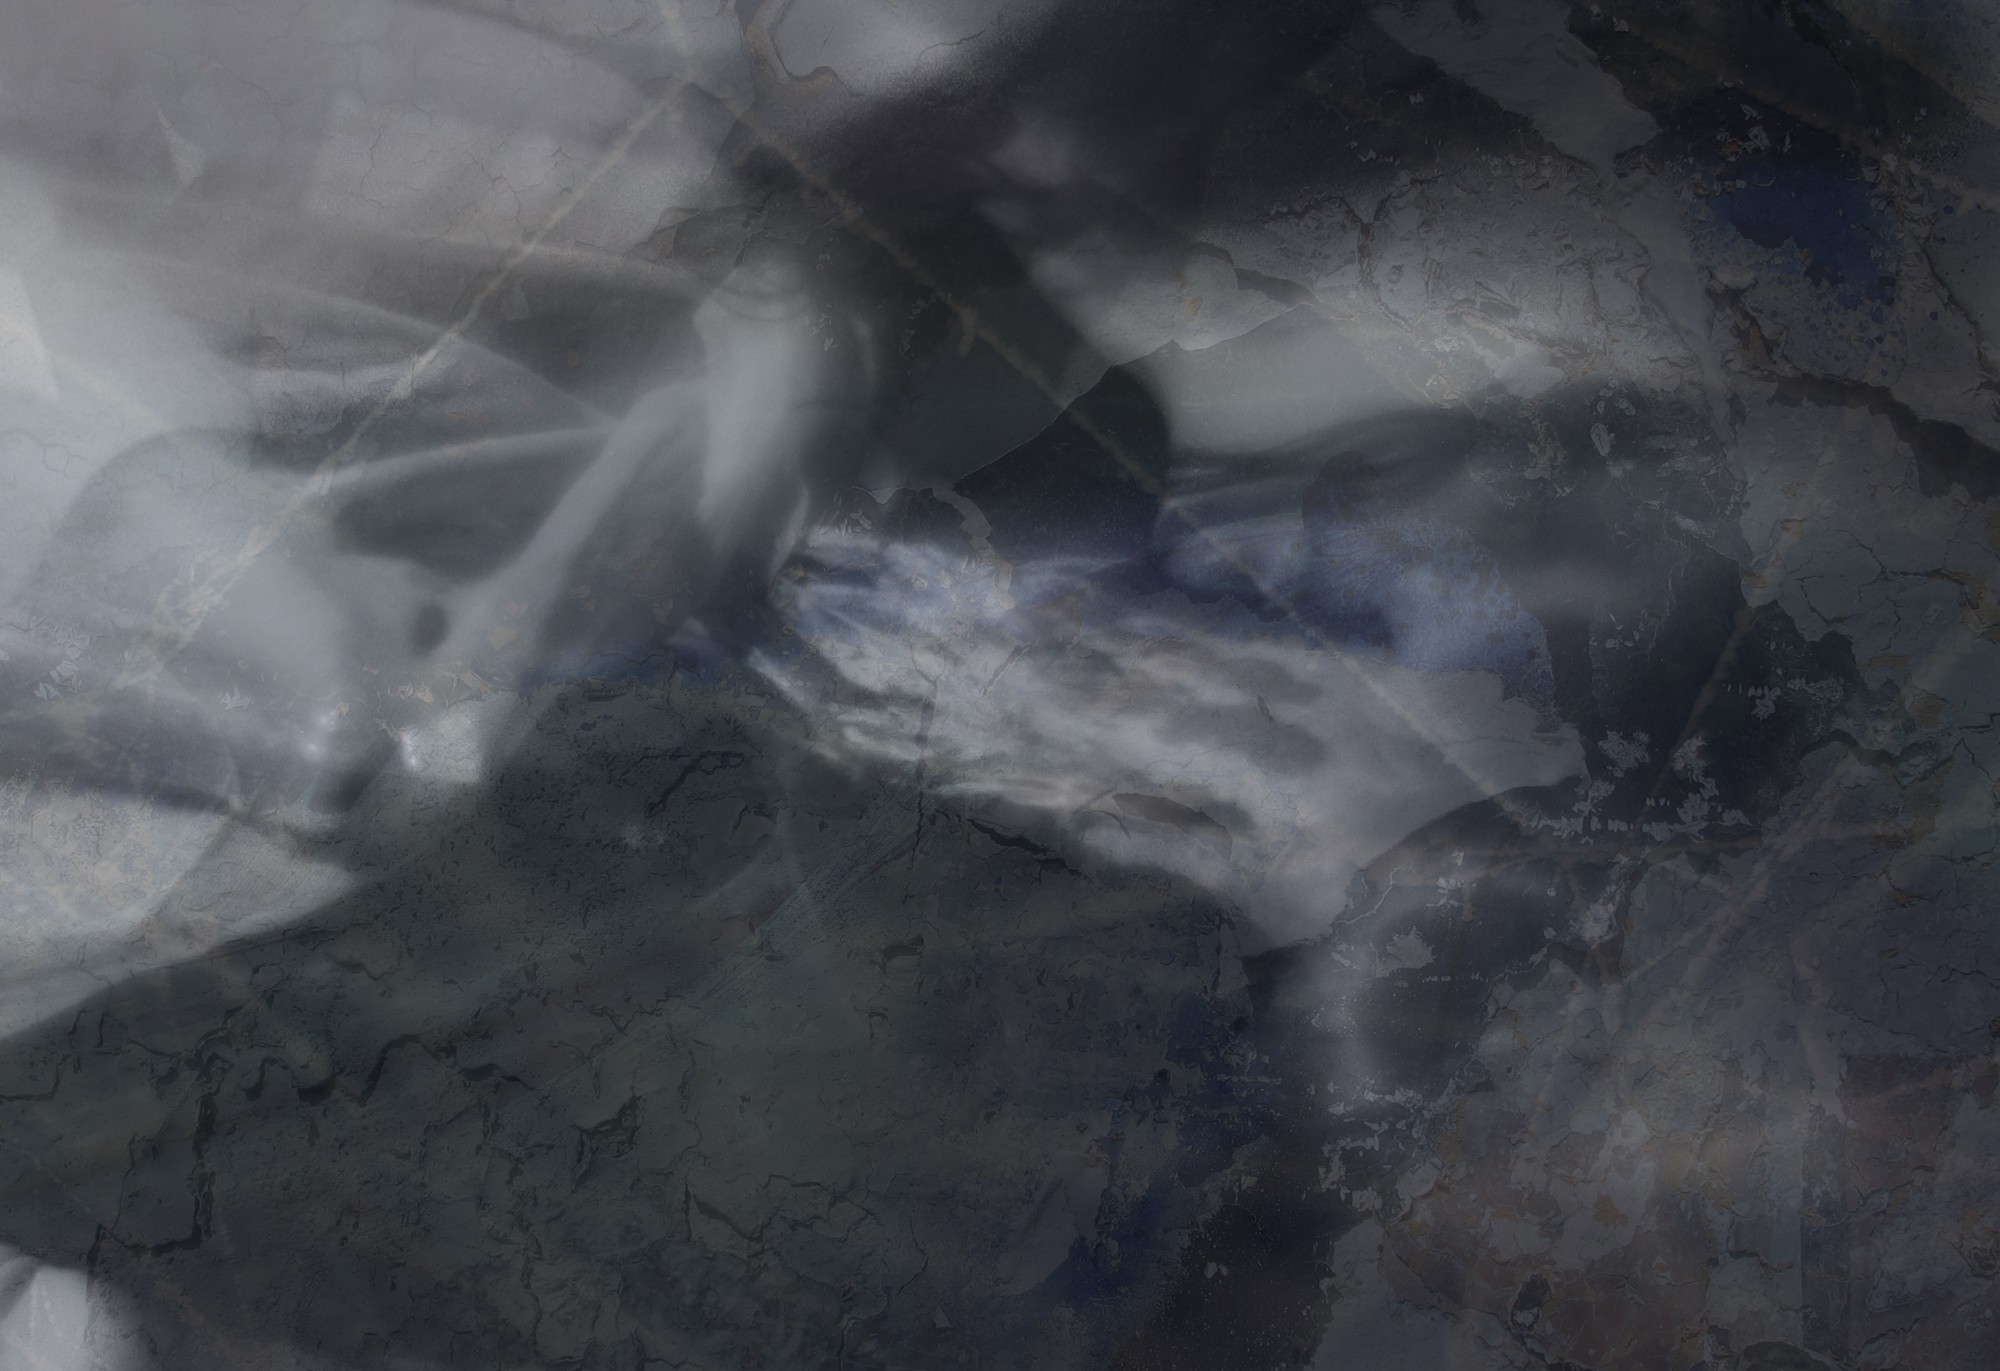 Abstract, textured image that includes a woman's profile and bone-like structures in a muted palette of black, gray and blue.